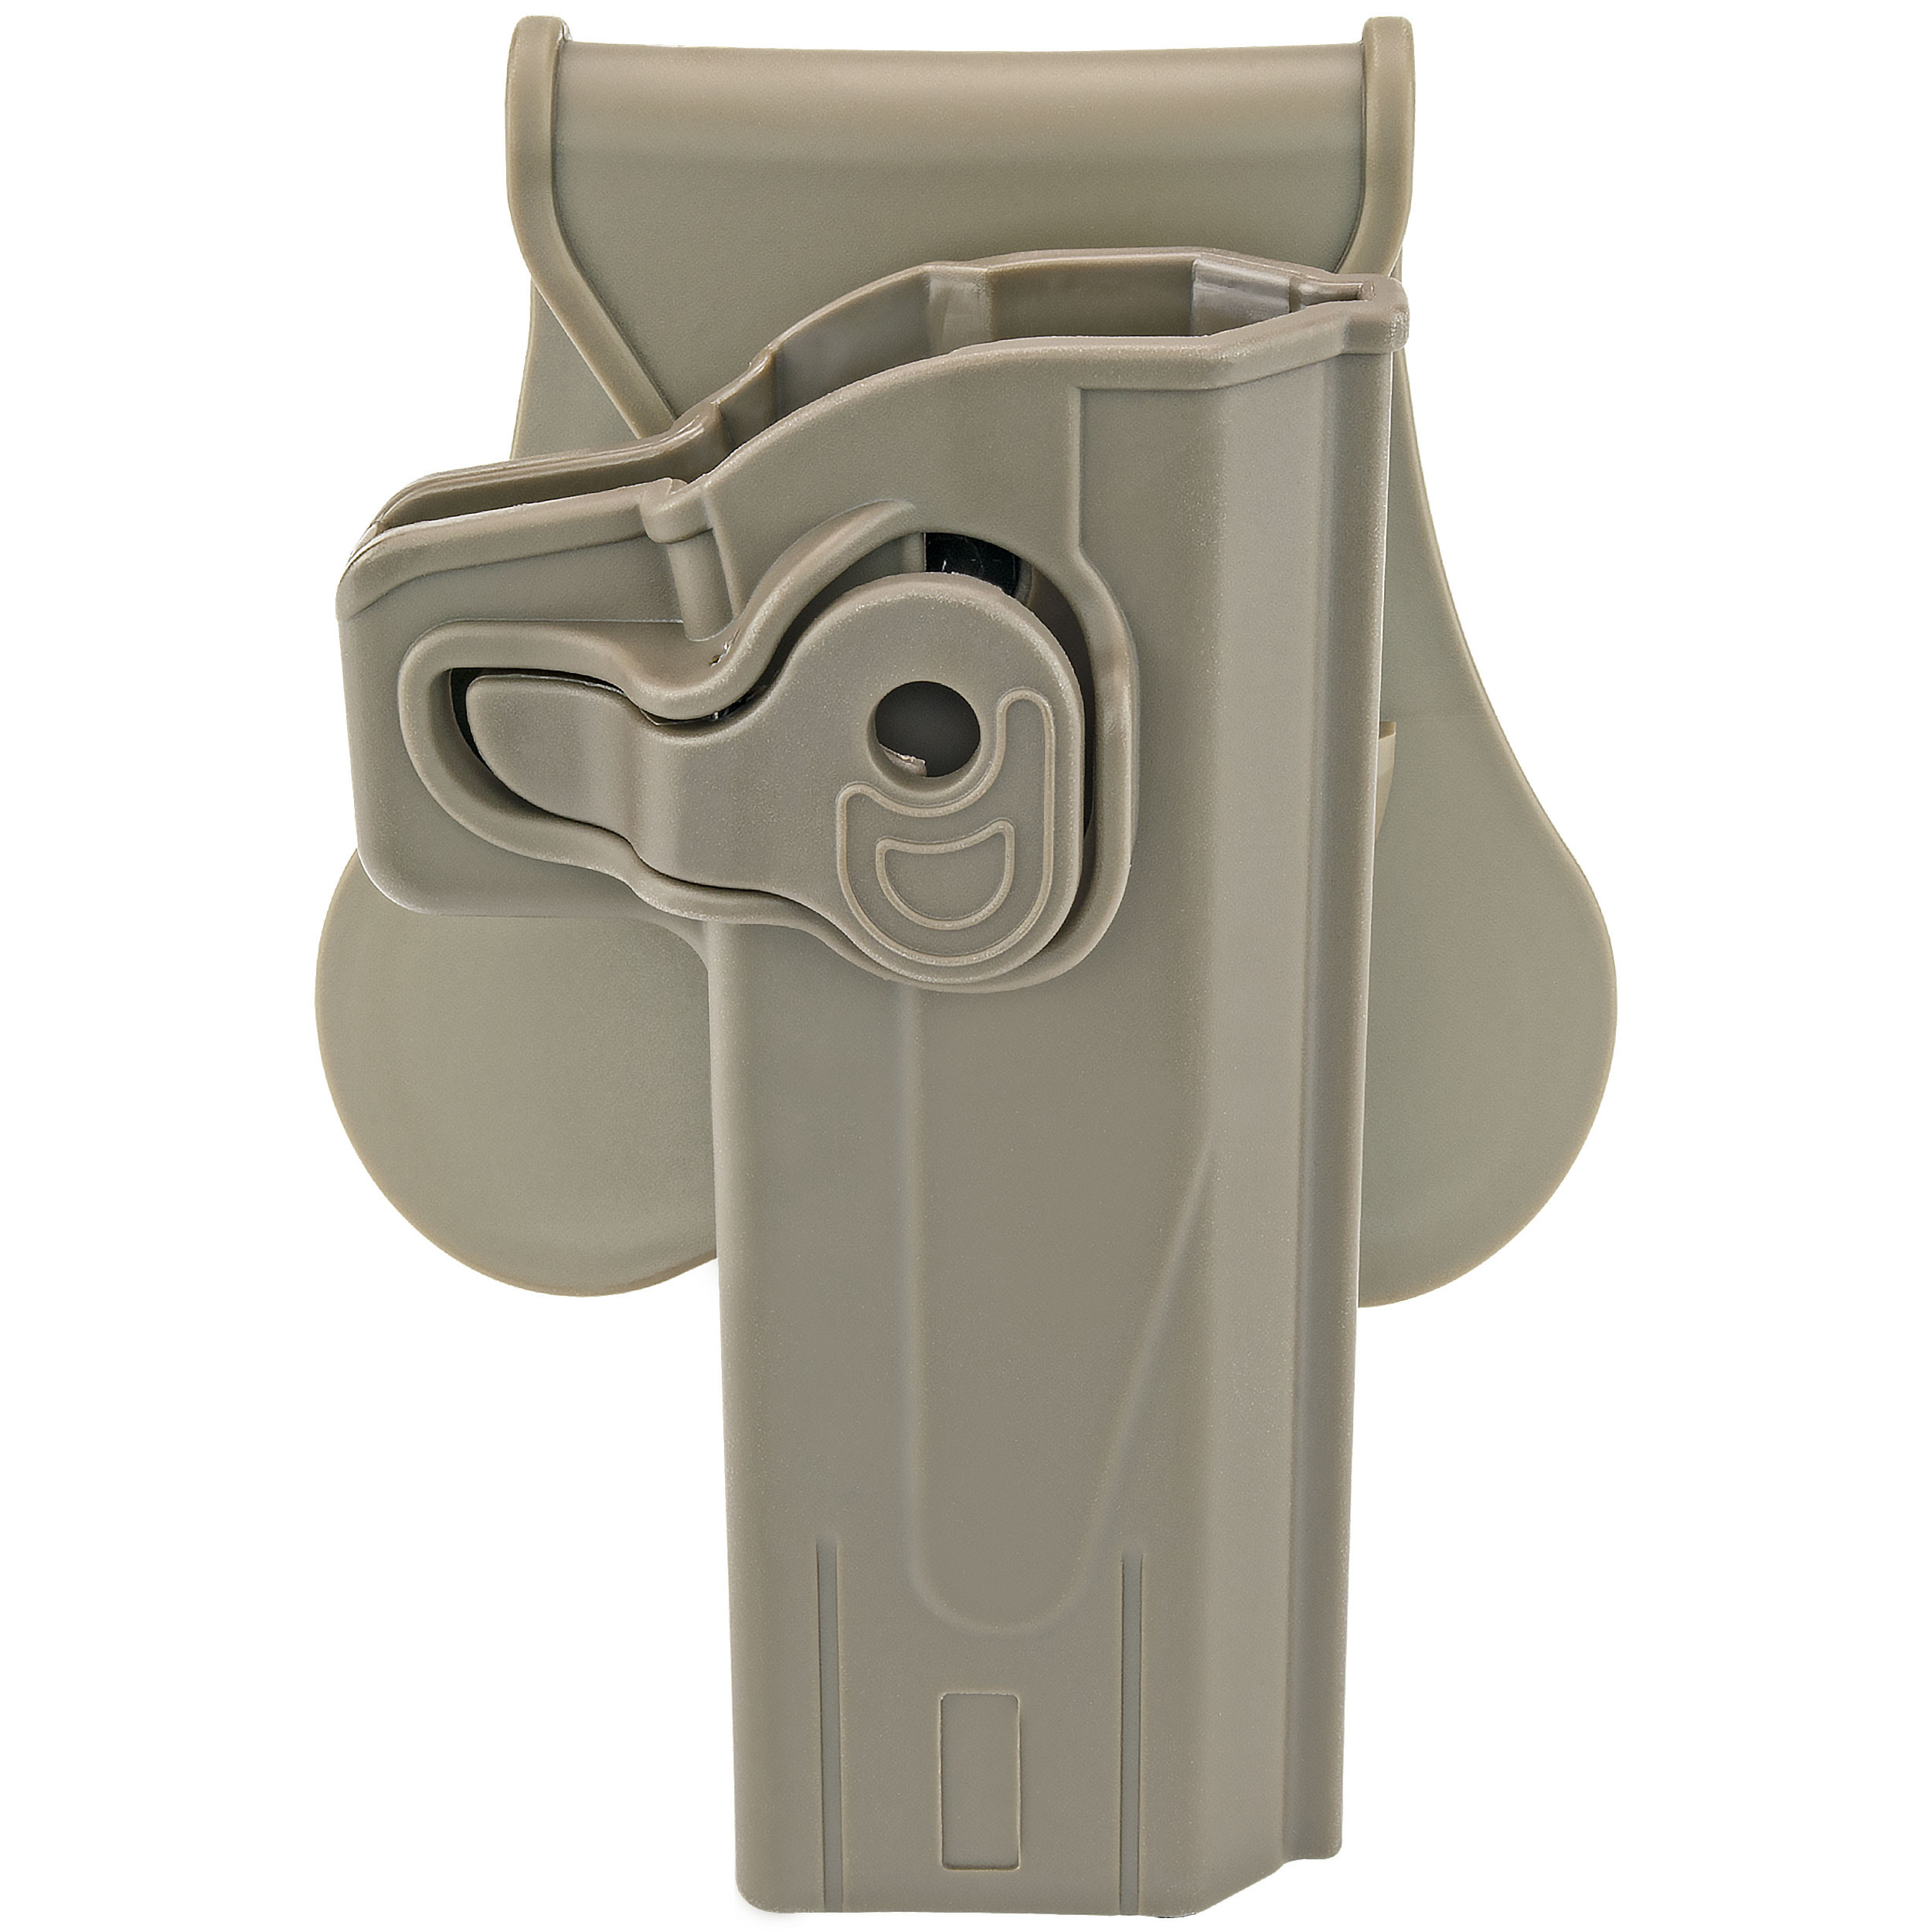 CY-HCPF Fits STI 2011, Hi-Capa (Special for Tokyo Marui, WE, KWA, KJW); FDE Color